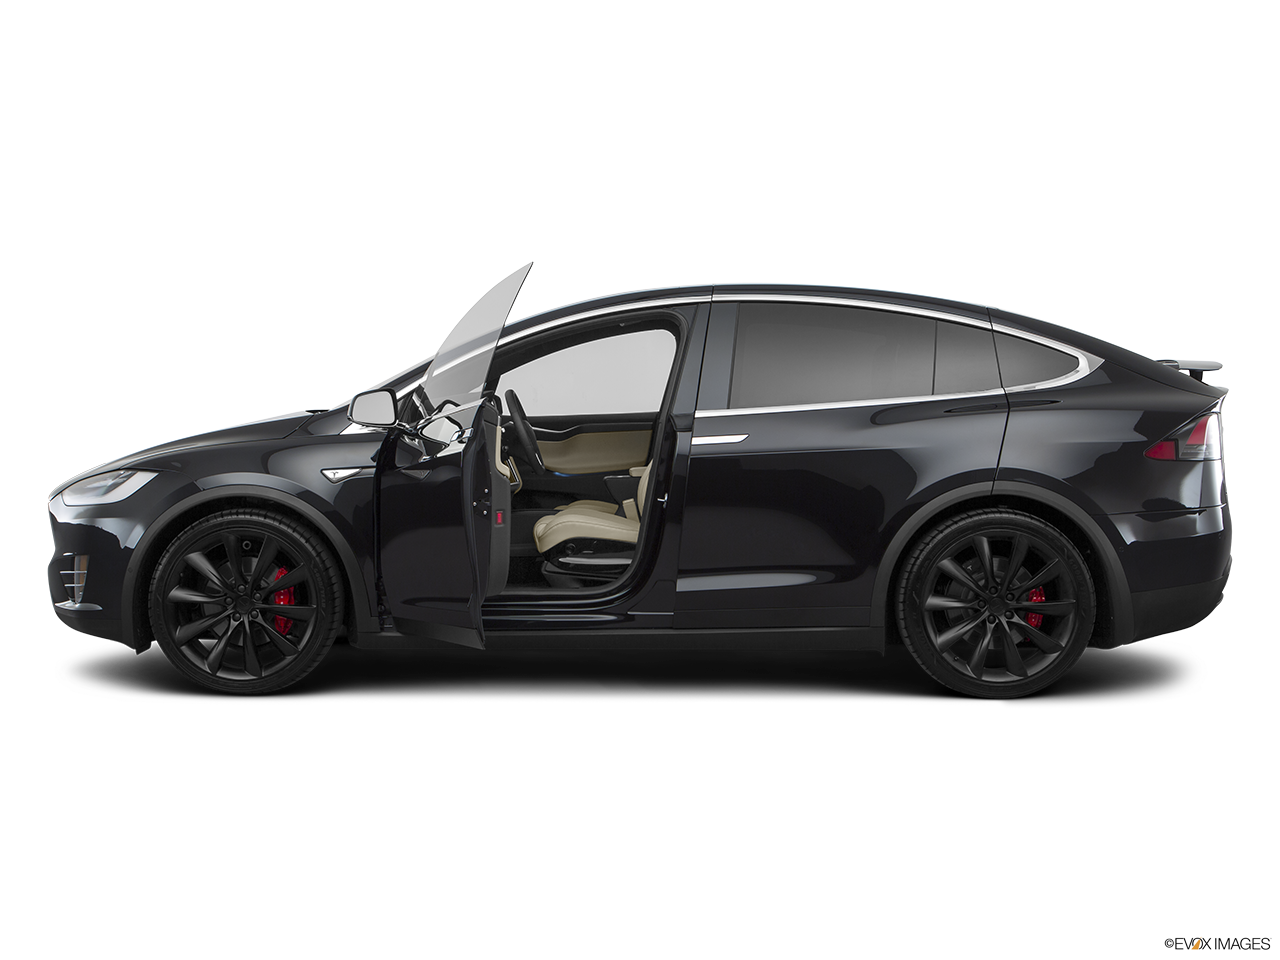 Side view of the Tesla Model X